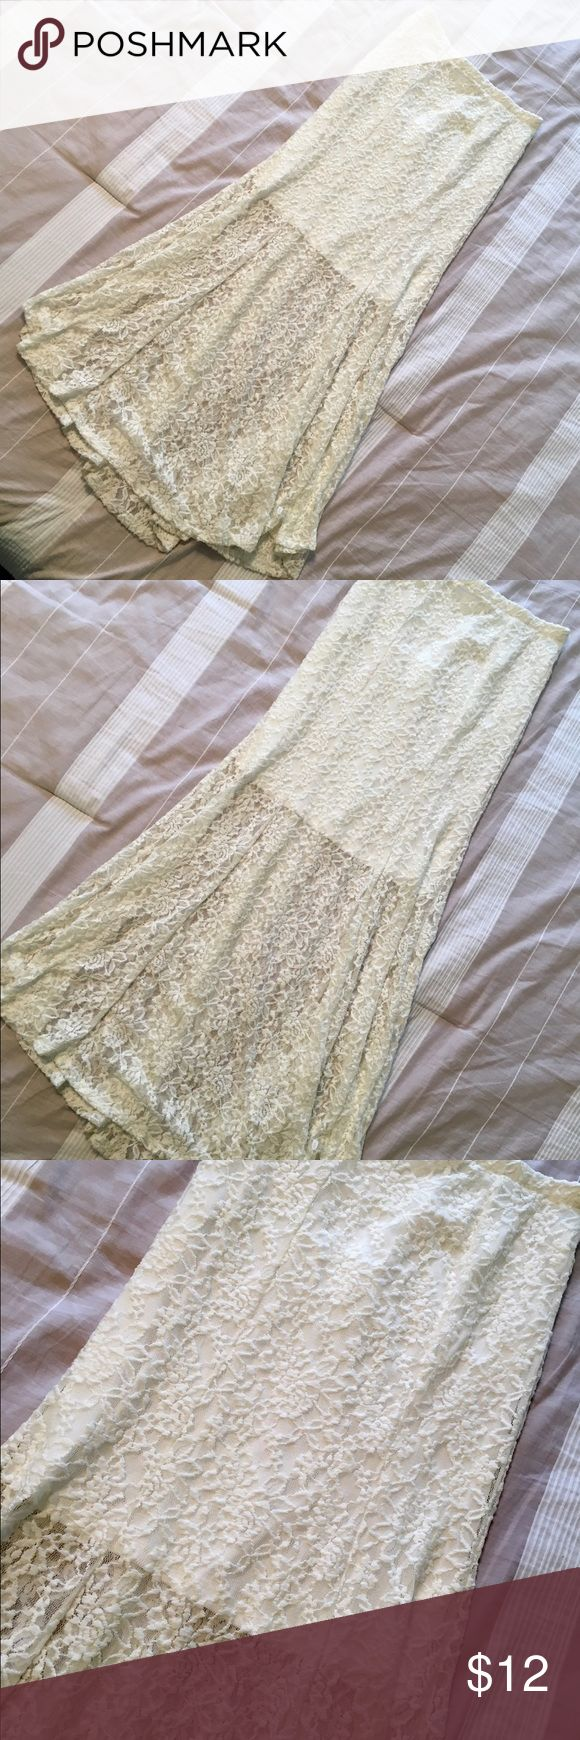 Monteau White Lace Maxi Skirt Monteau white lace maxi skirt. Size is large but fits a size smaller. More like a medium. Waist band is elastic. Very figure flattering and perfect for the beach! In perfect condition! ✨BUNDLE AND SAVE✨ Monteau Skirts Maxi